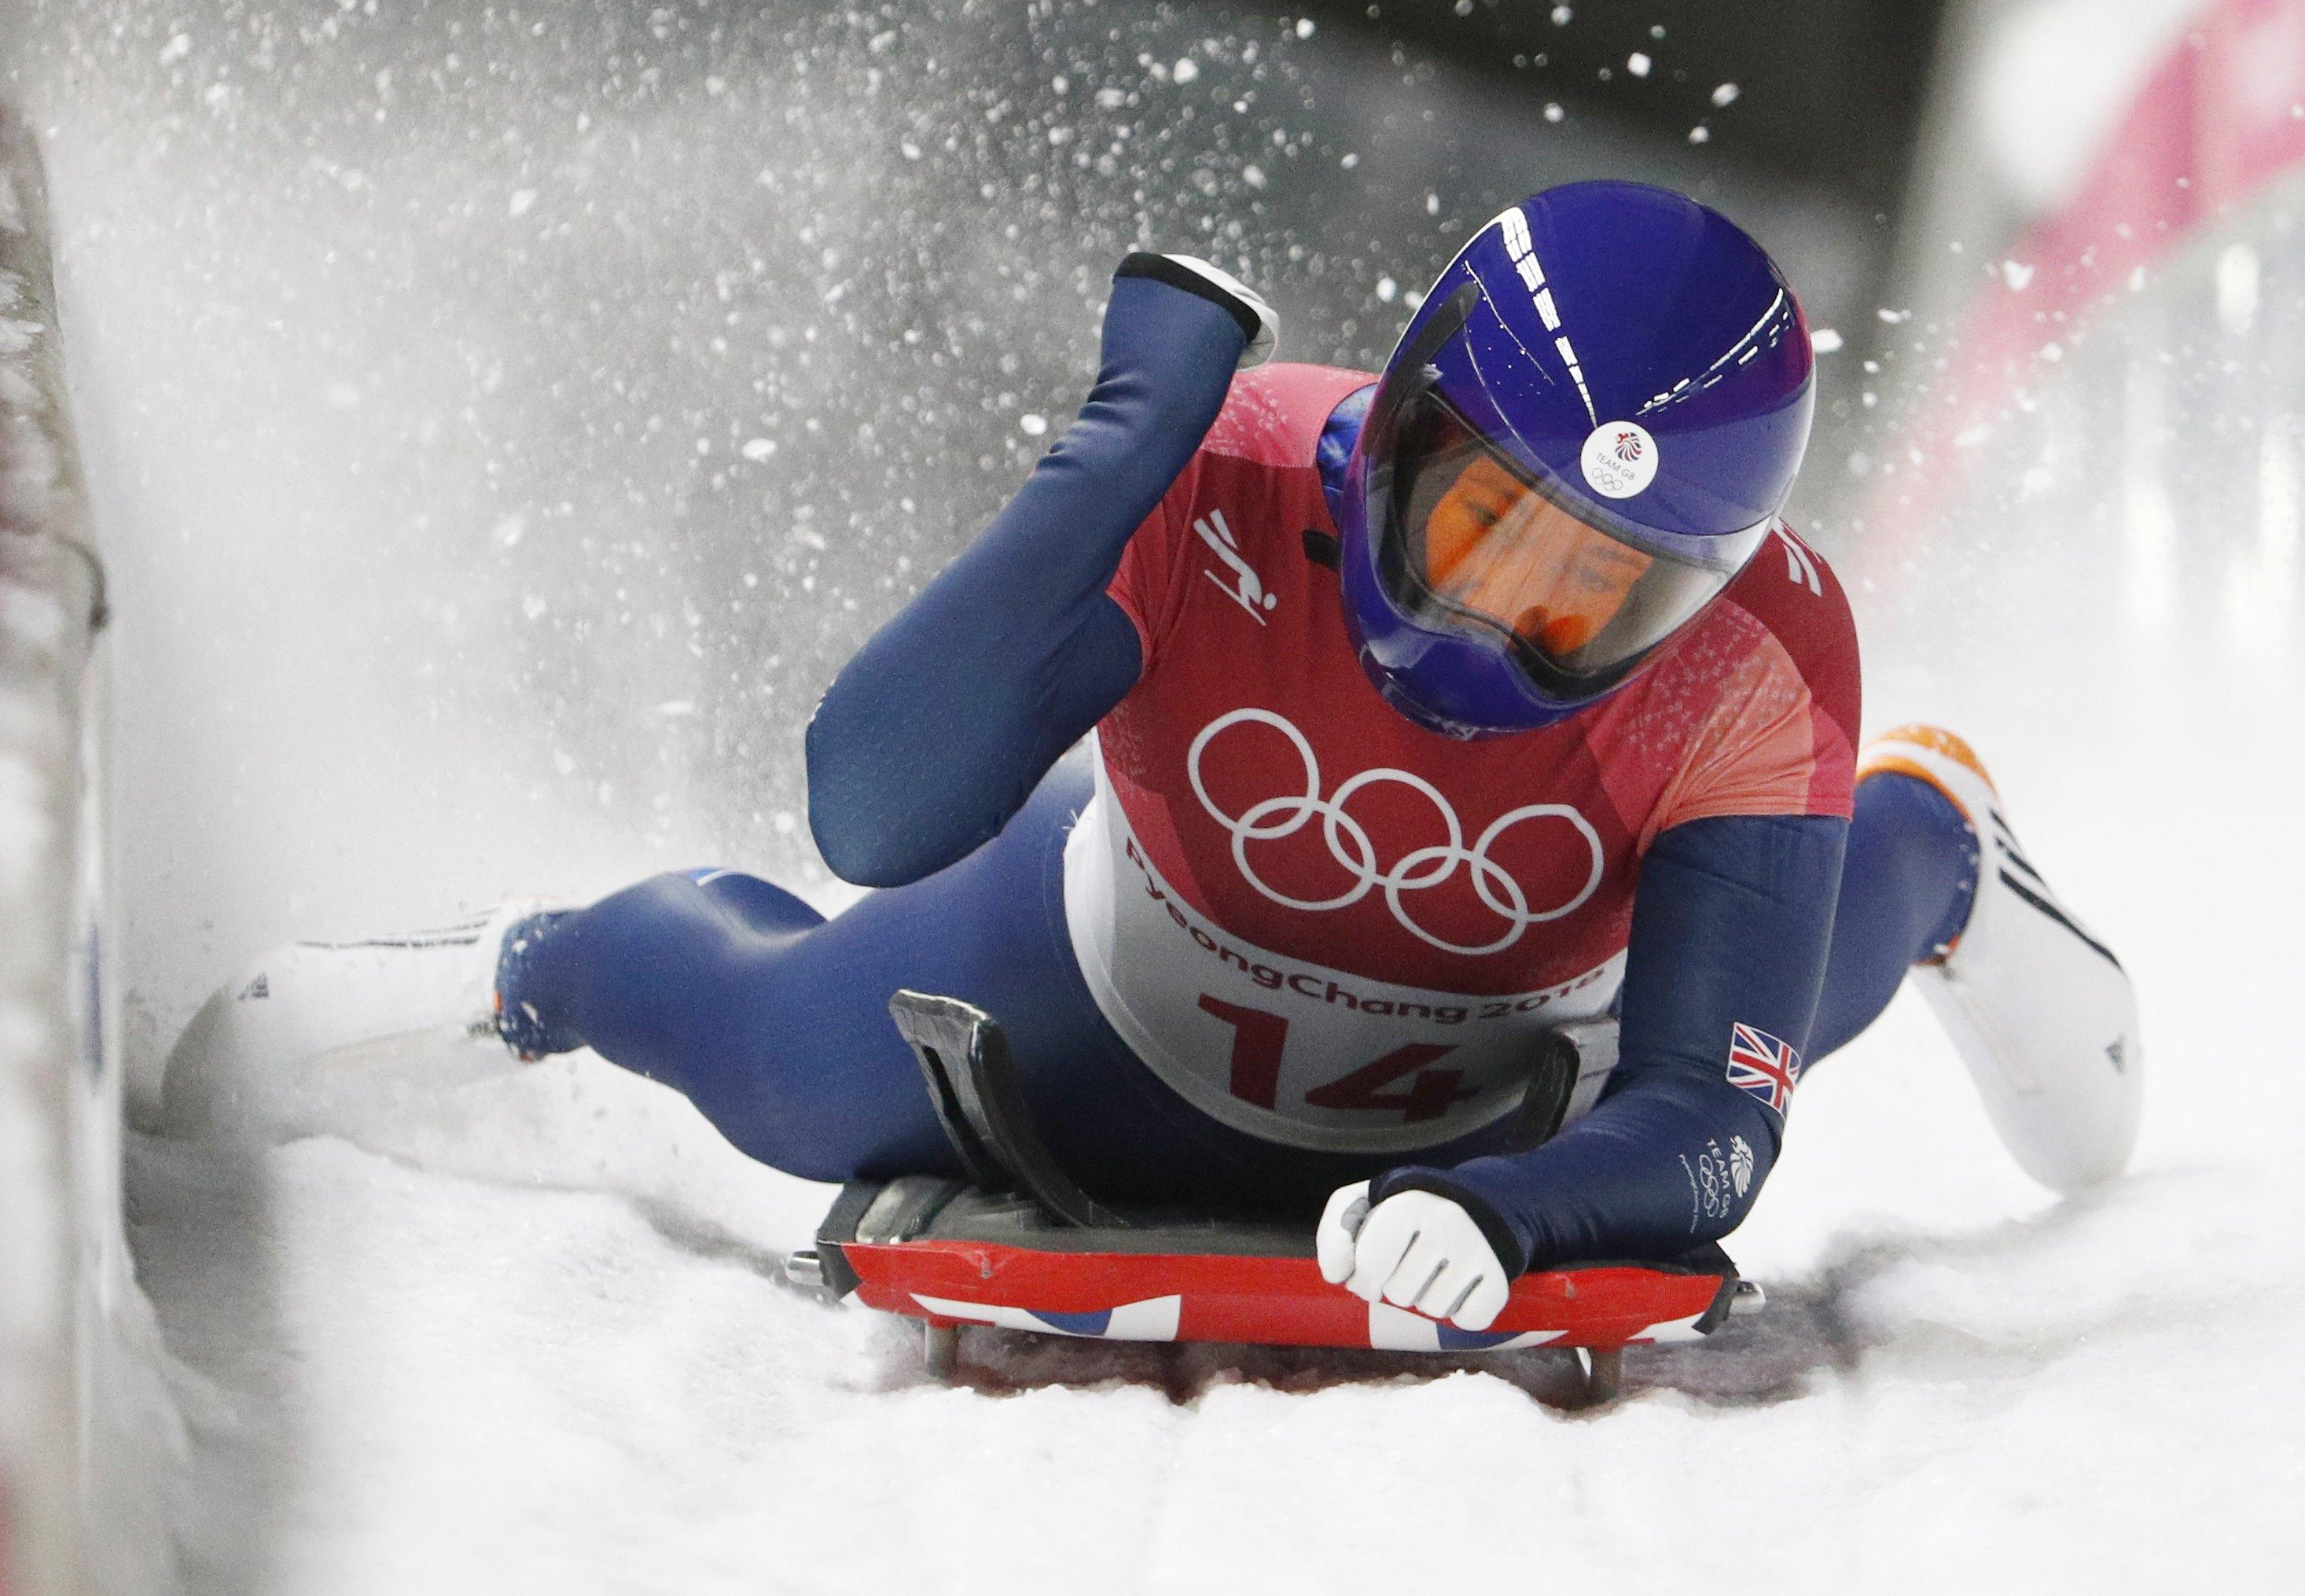 Lizzy Yarnold pumps the air with delight after her stunning final run led to Olympic gold